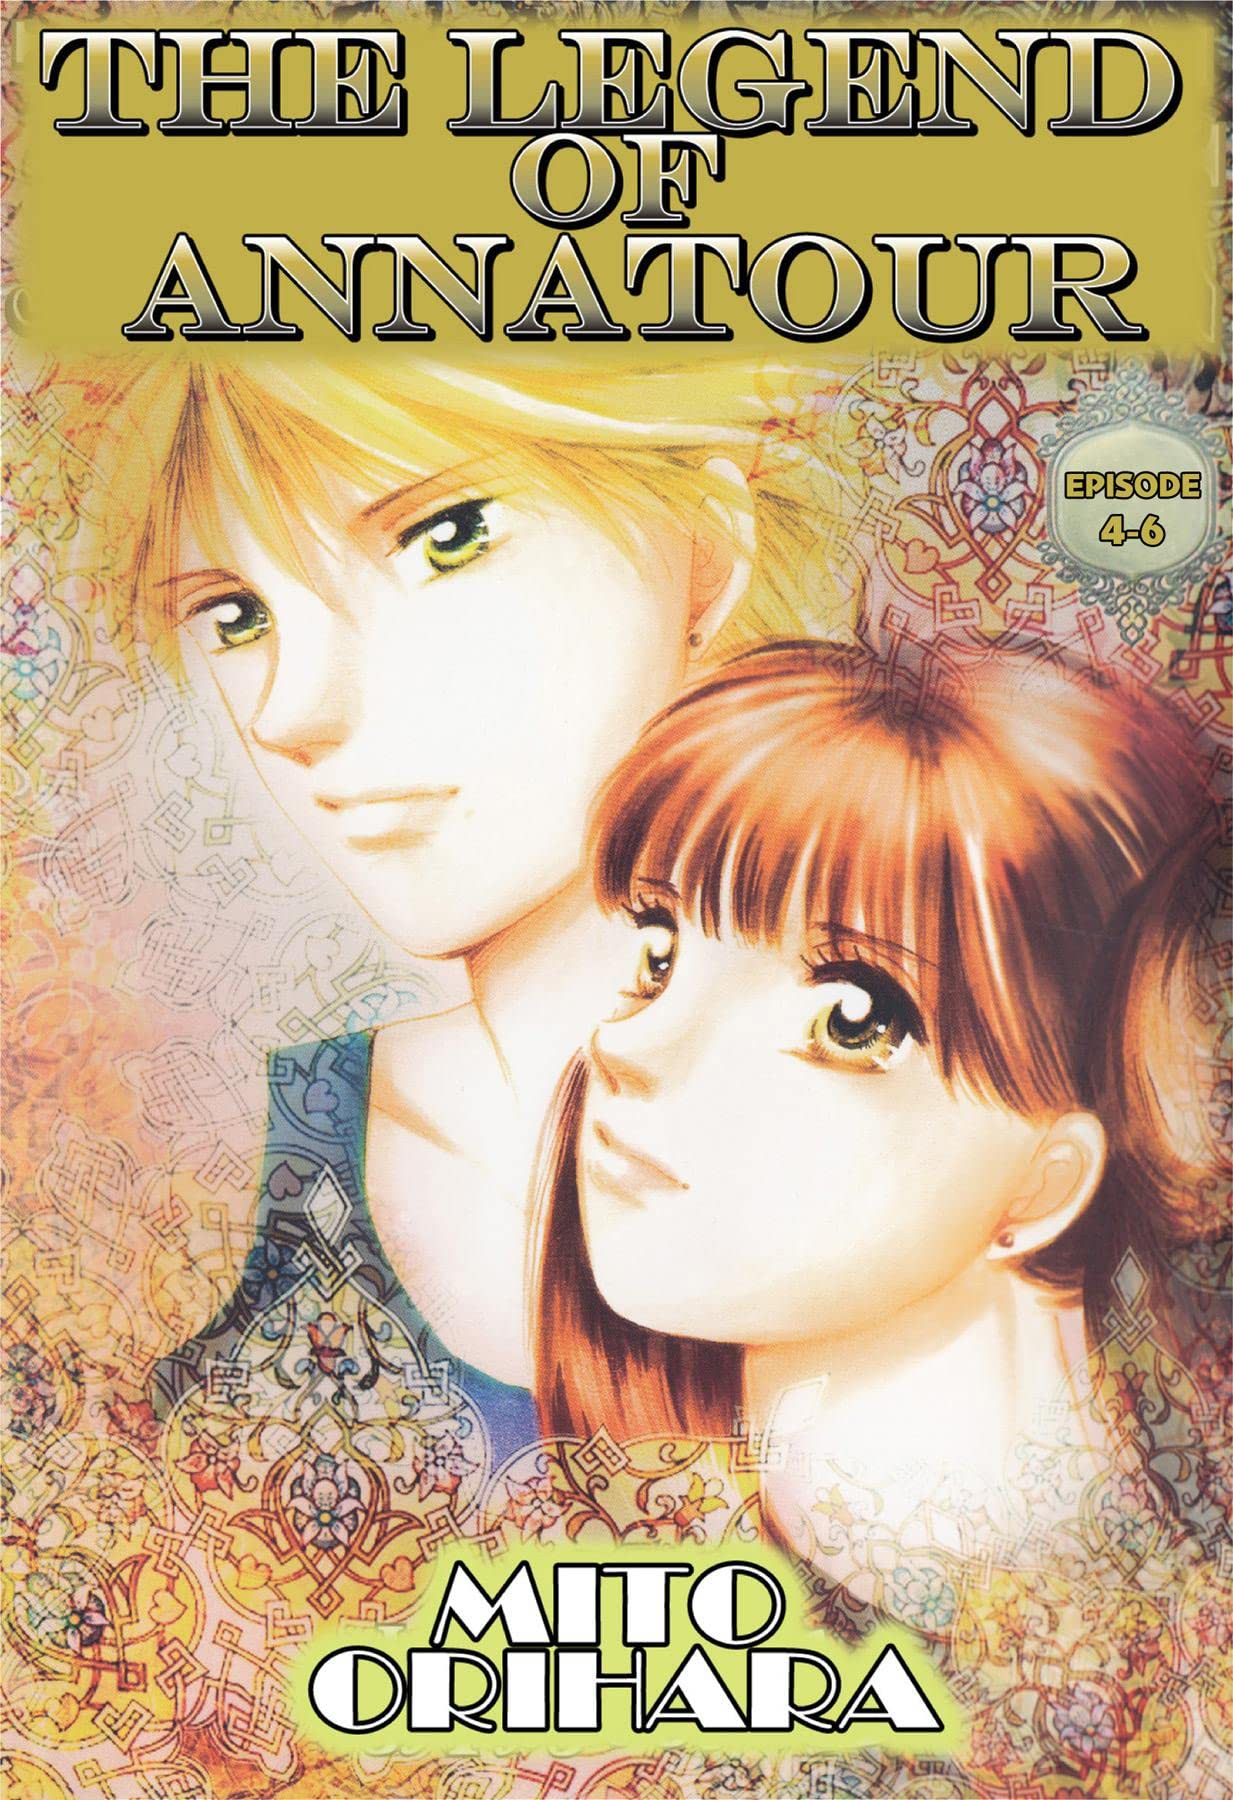 THE LEGEND OF ANNATOUR #27